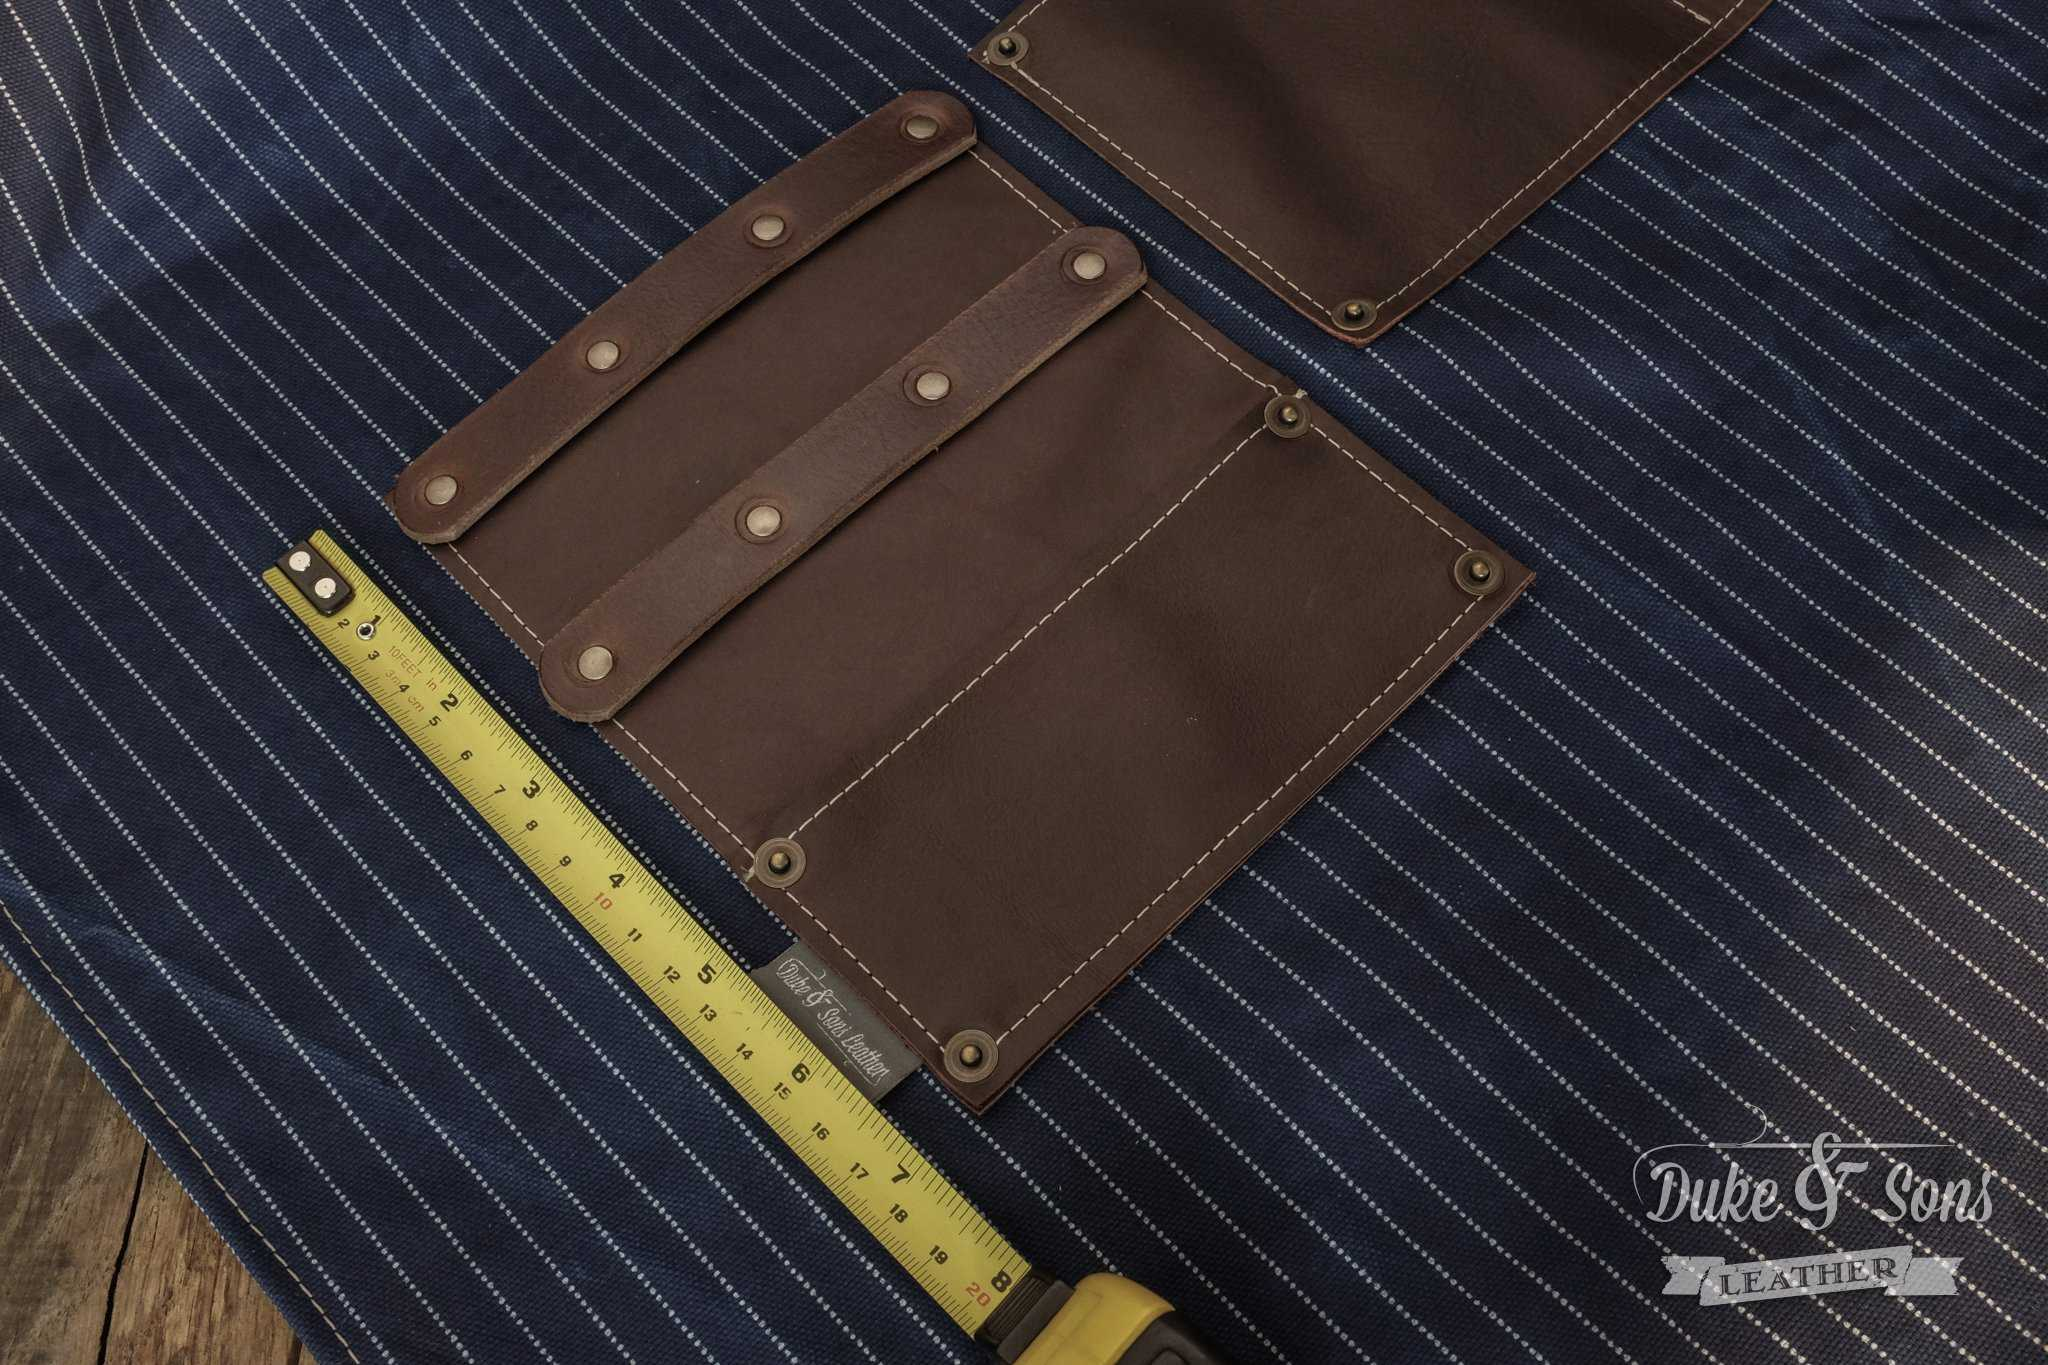 Barber apron,ready for 7 inch tools | Duke & Sons Leather